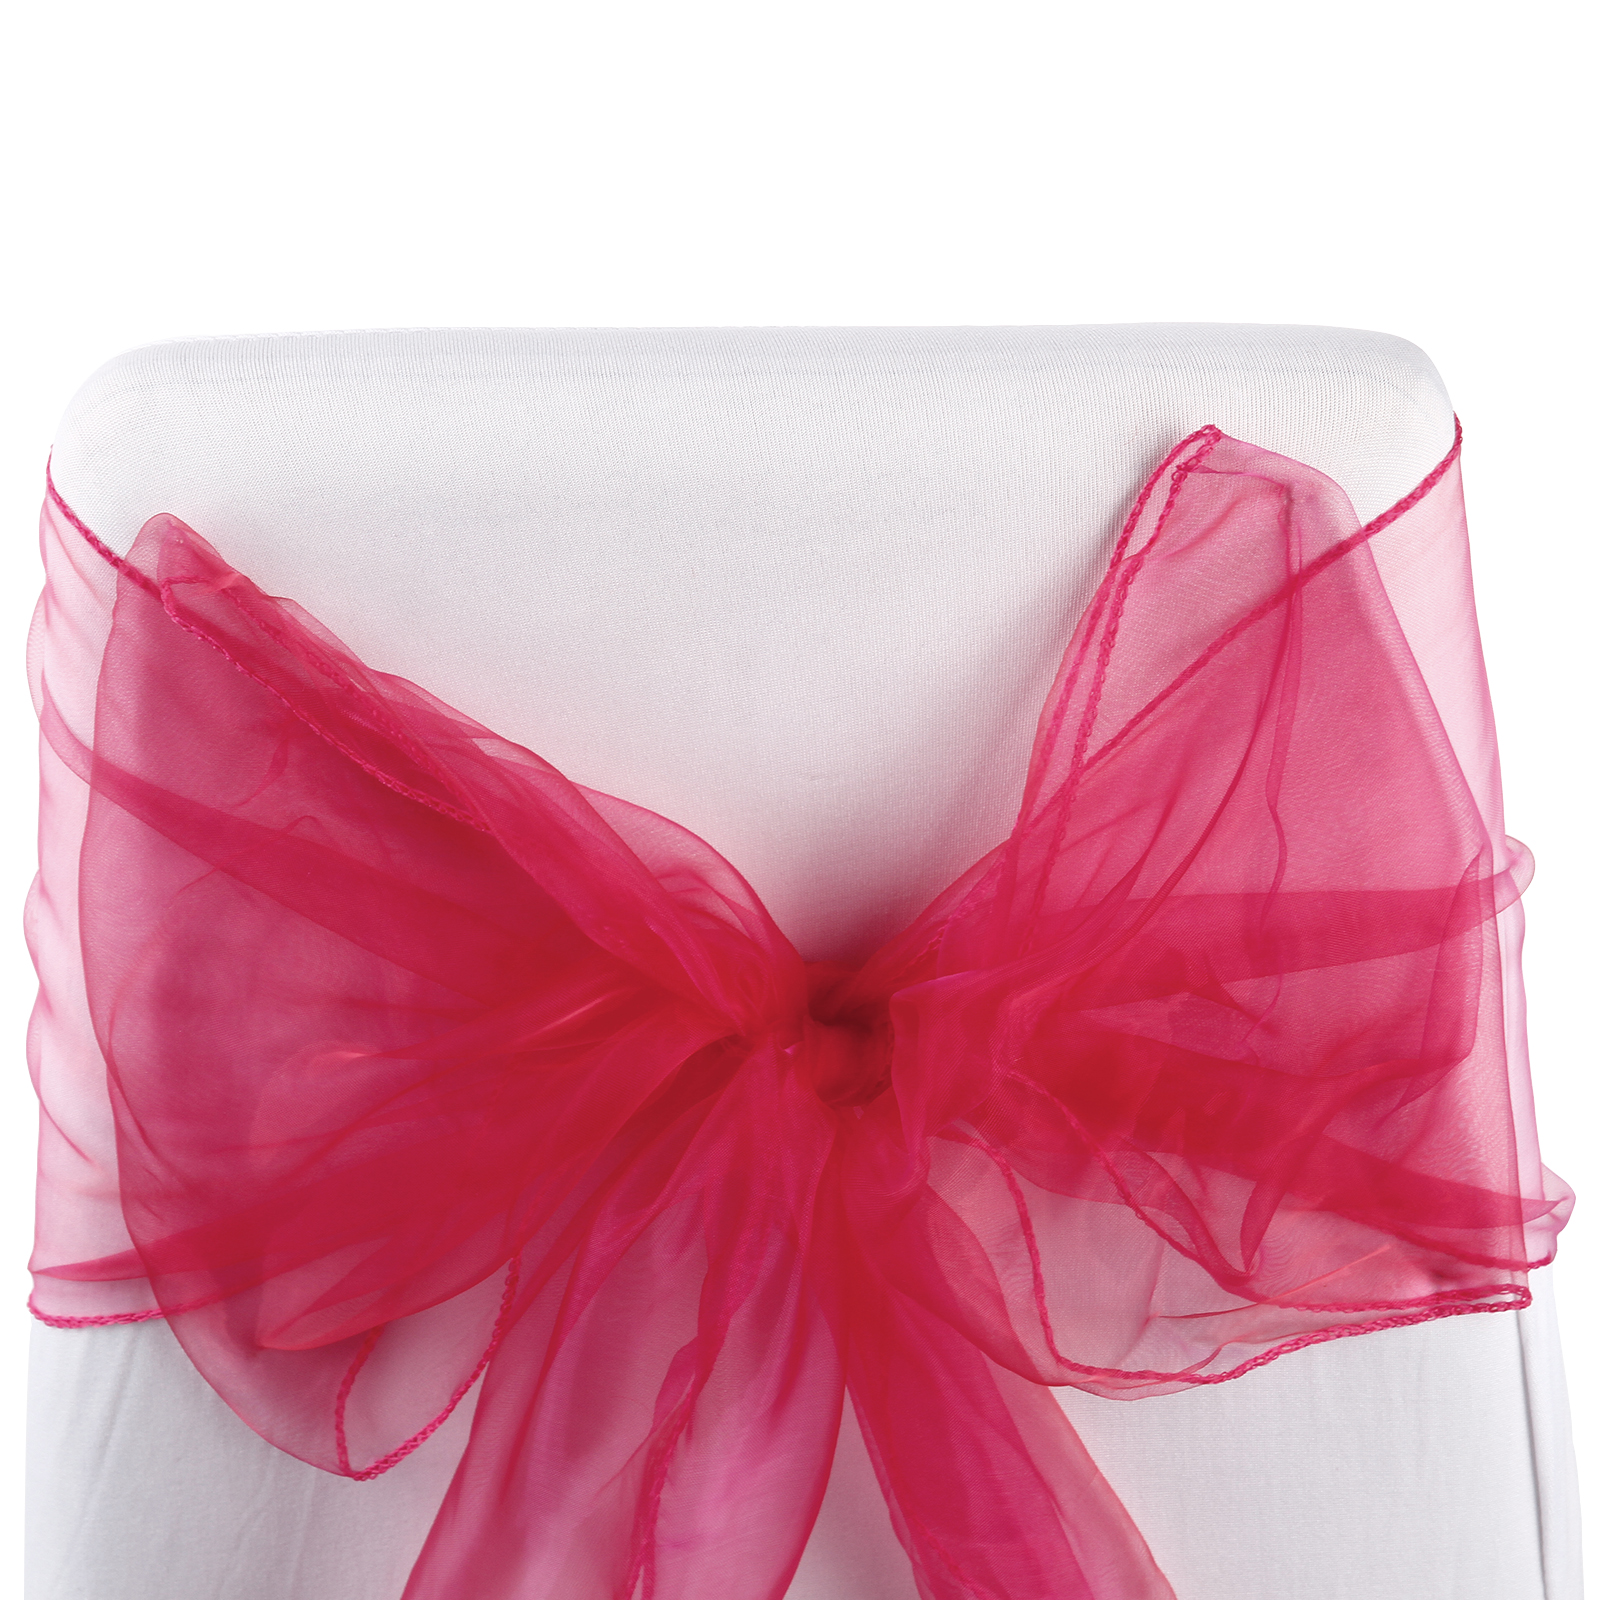 chair covers and sashes for sale circle couch 50 wedding organza cover bow sash uk ebay